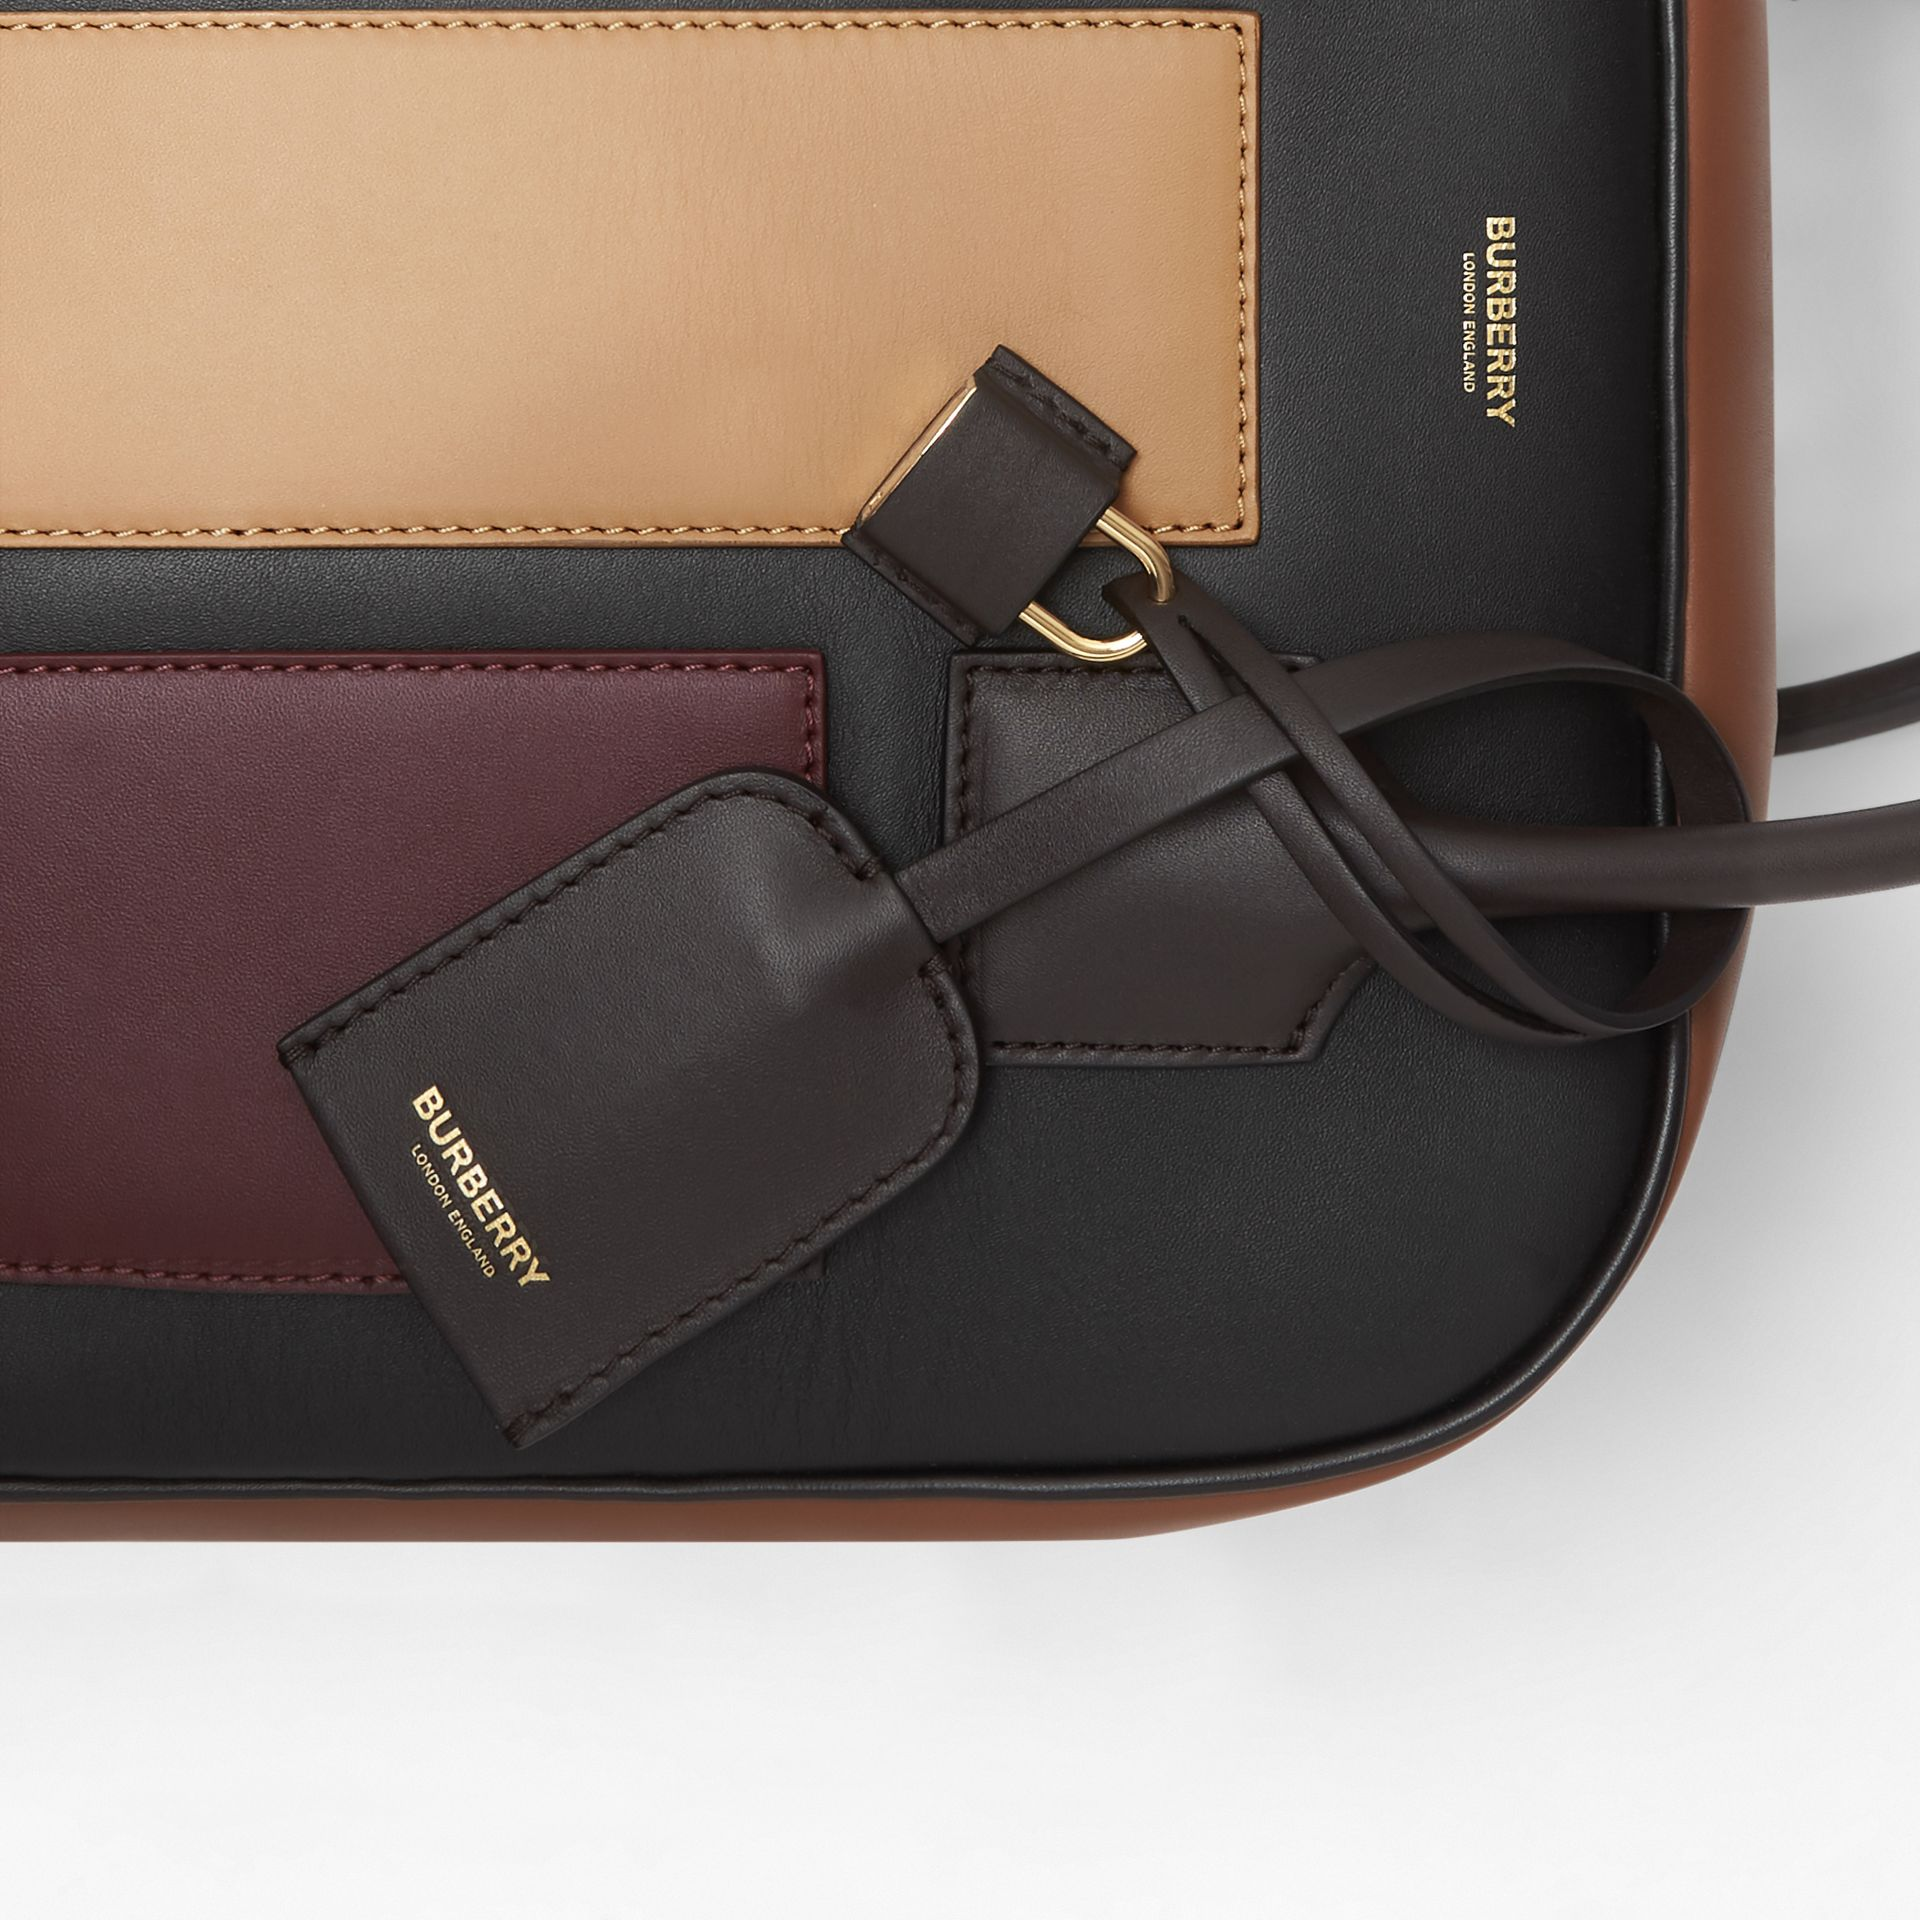 Medium Panelled Leather Cube Bag in Black - Women | Burberry Canada - gallery image 8